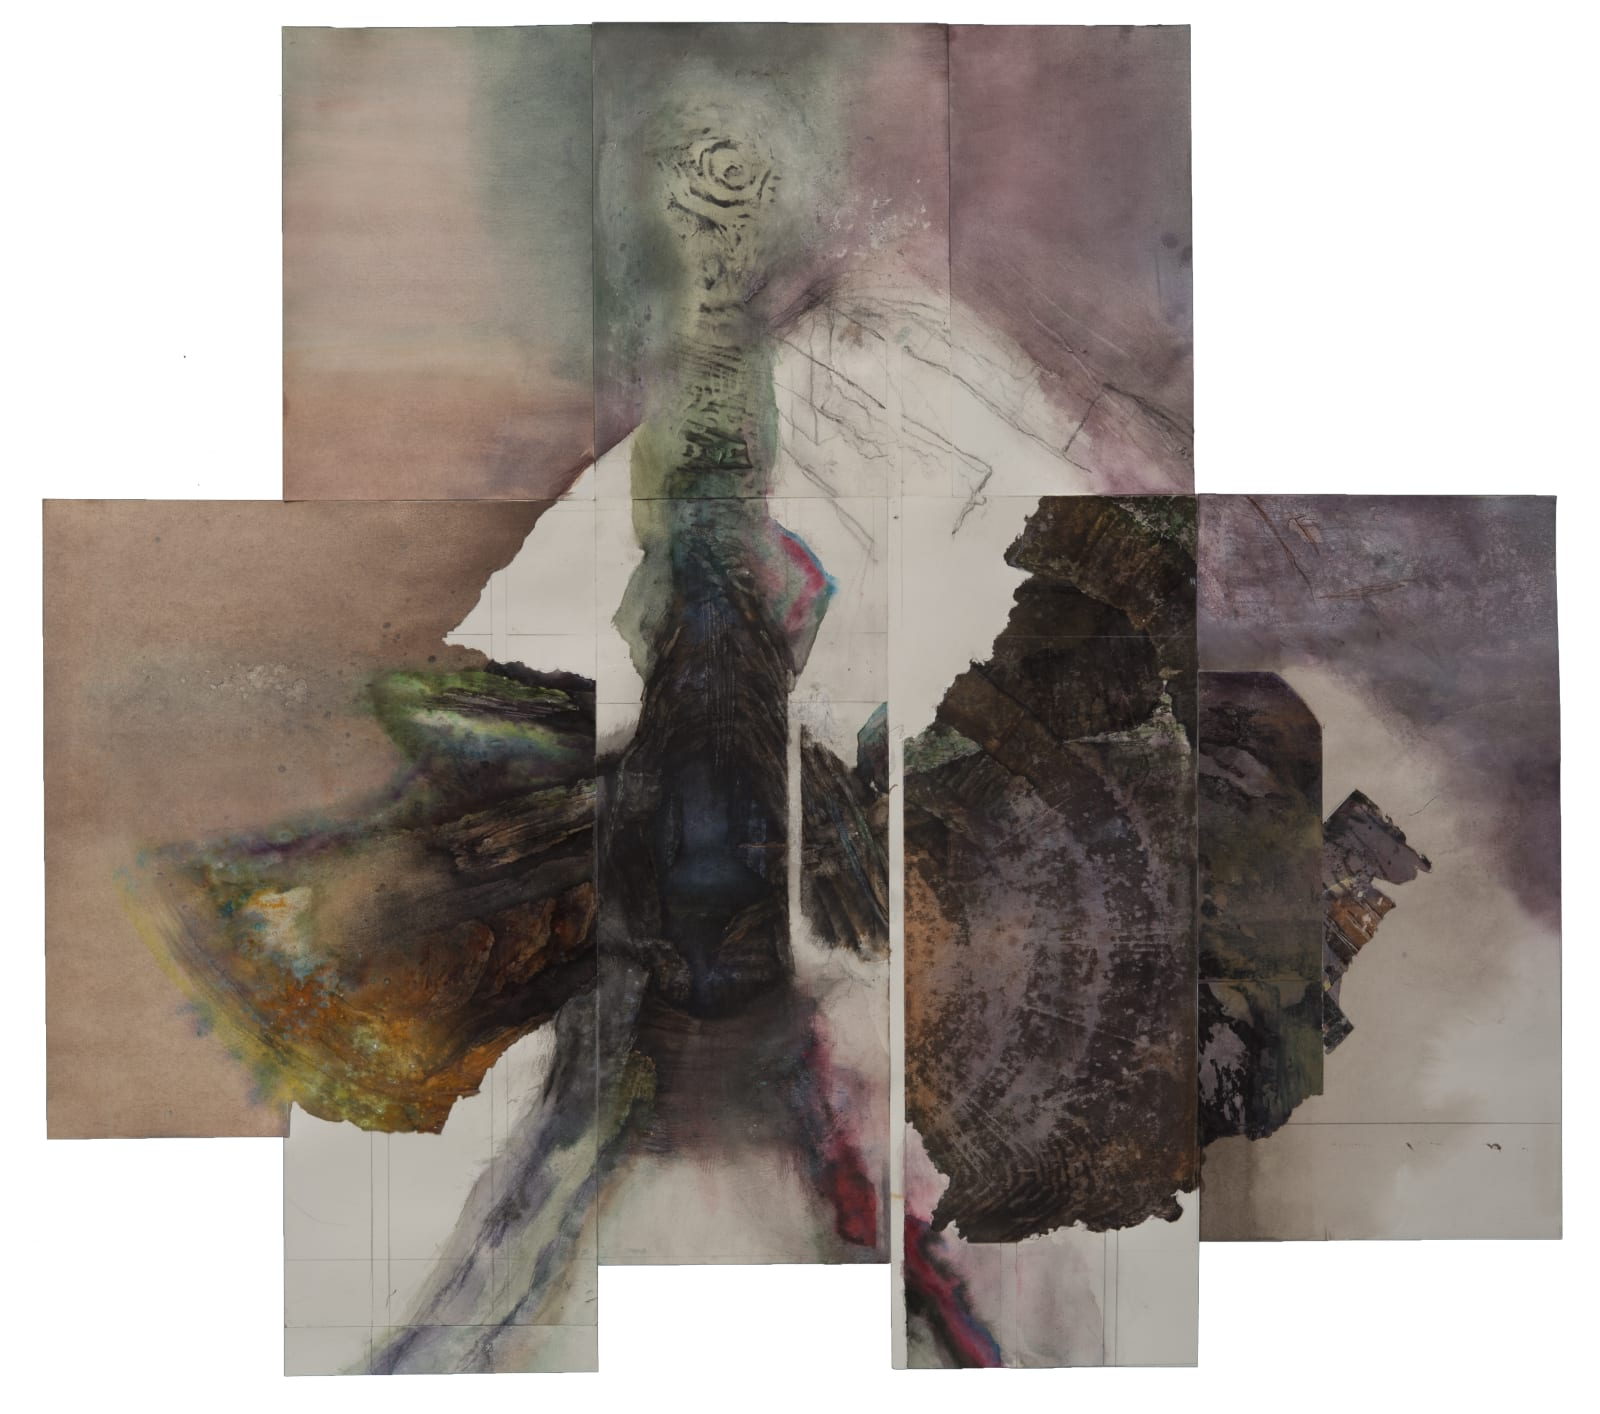 Liminatus Habrodais, 2002 - 2020 Watercolor, acrylic, oil, graphite, Conté crayon, charcoal, and woodcut on pieced paper. 34 x 38 in. (TM 27) $10,000